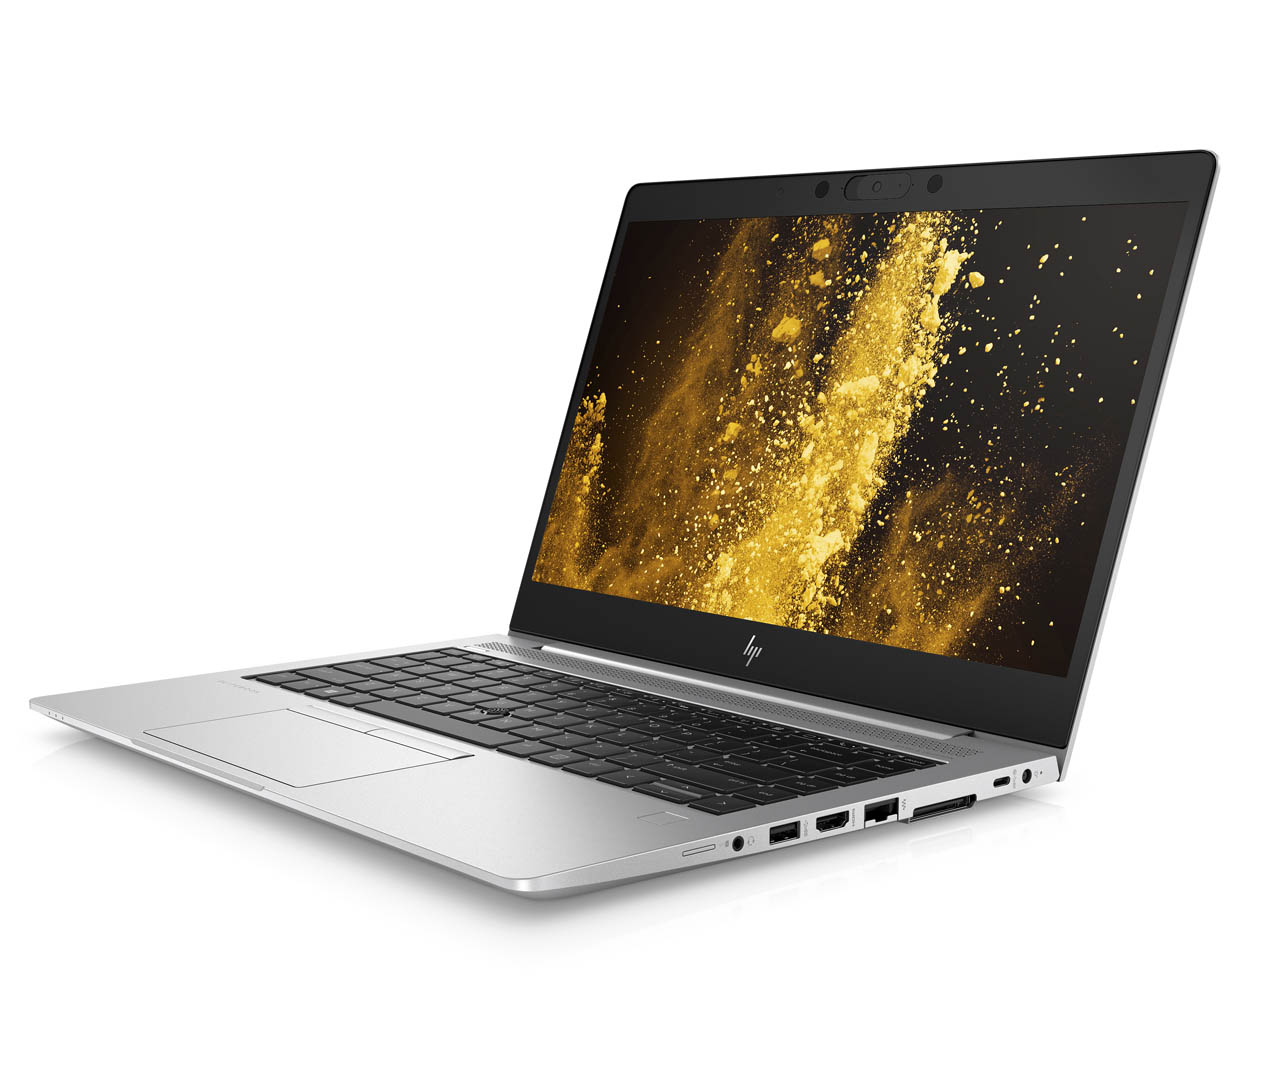 HP annuncia gli EliteBook 700 G6 e l'HP mt45 Mobile Thin Client 11